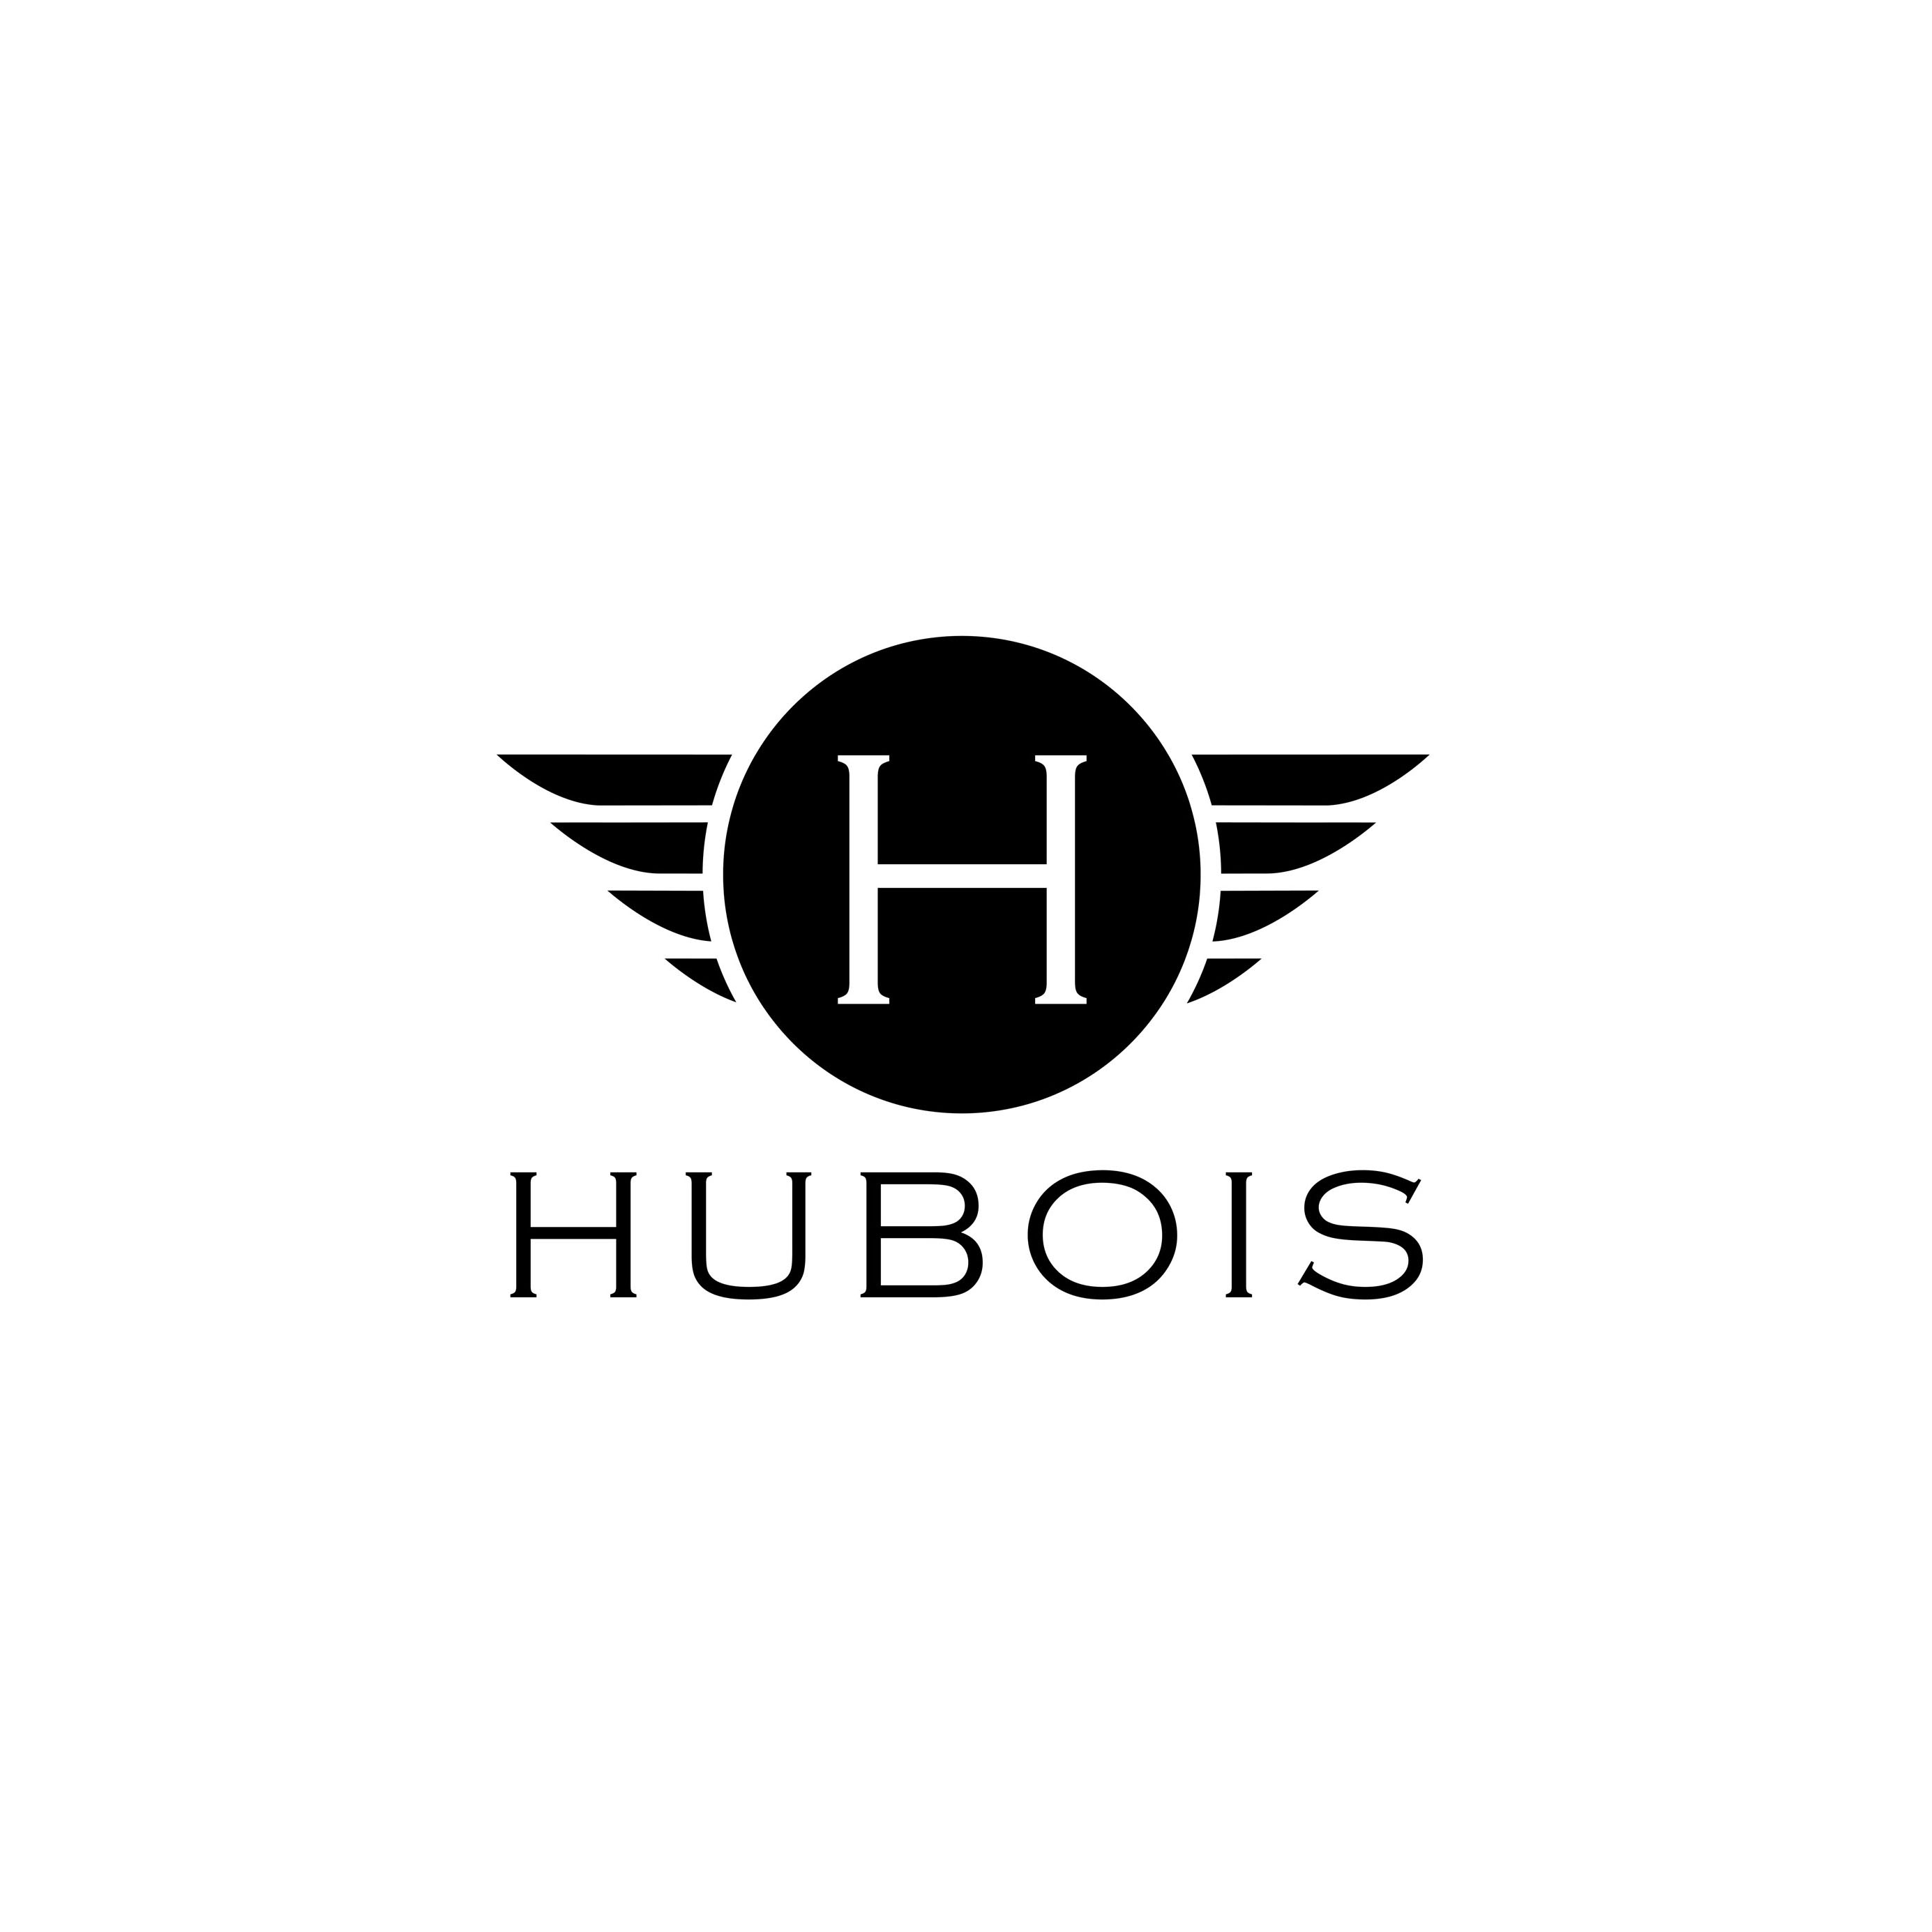 leather-goods-logo-design